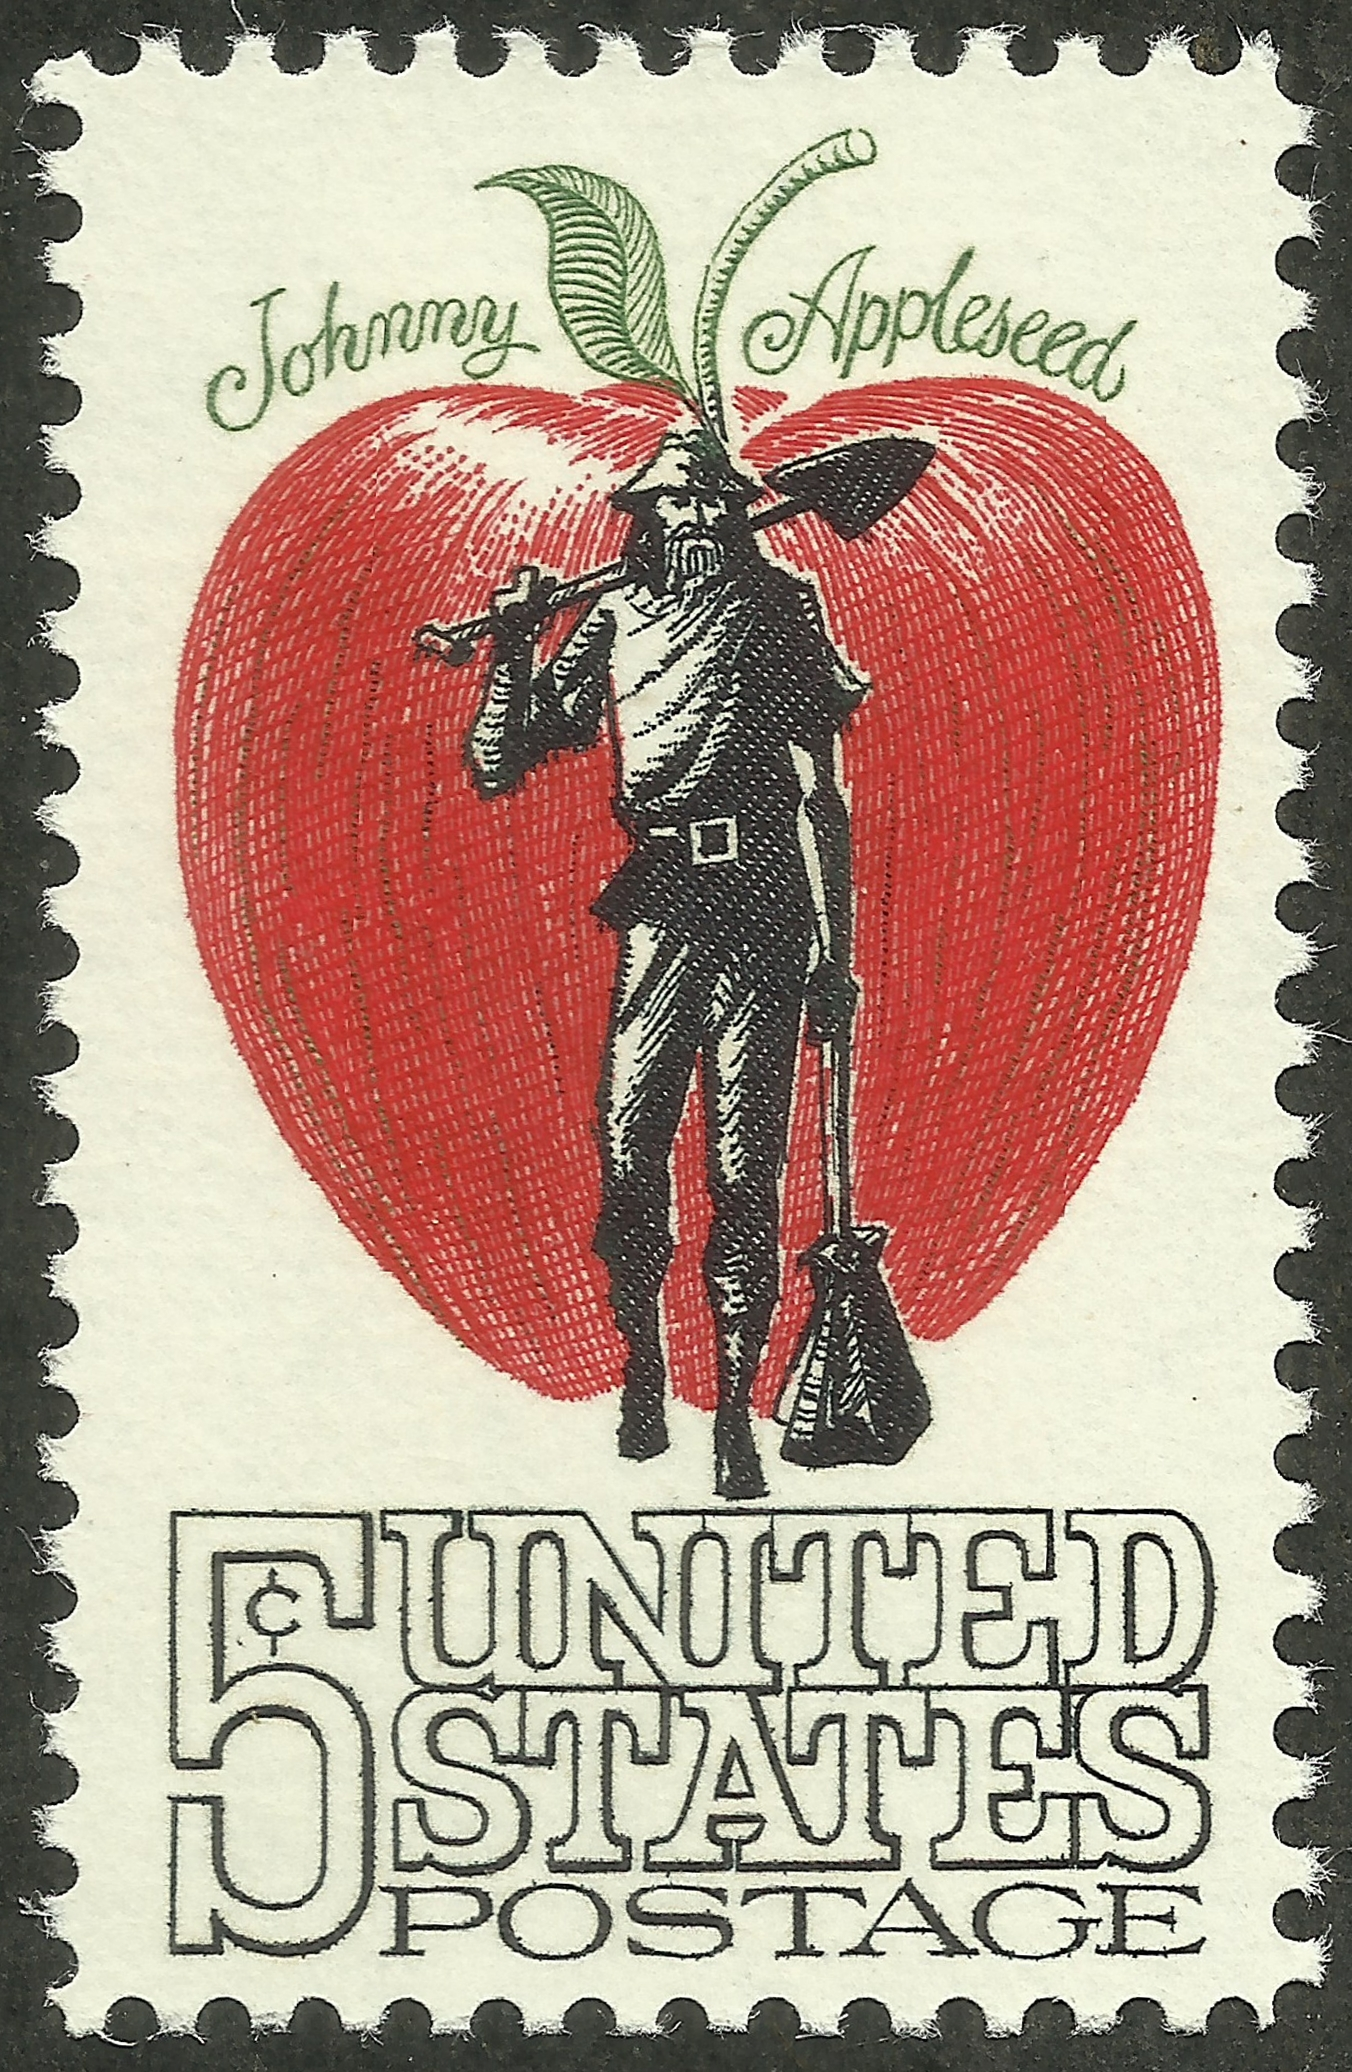 United States postage stamp depicting Johnny Appleseed in front of a large red apple